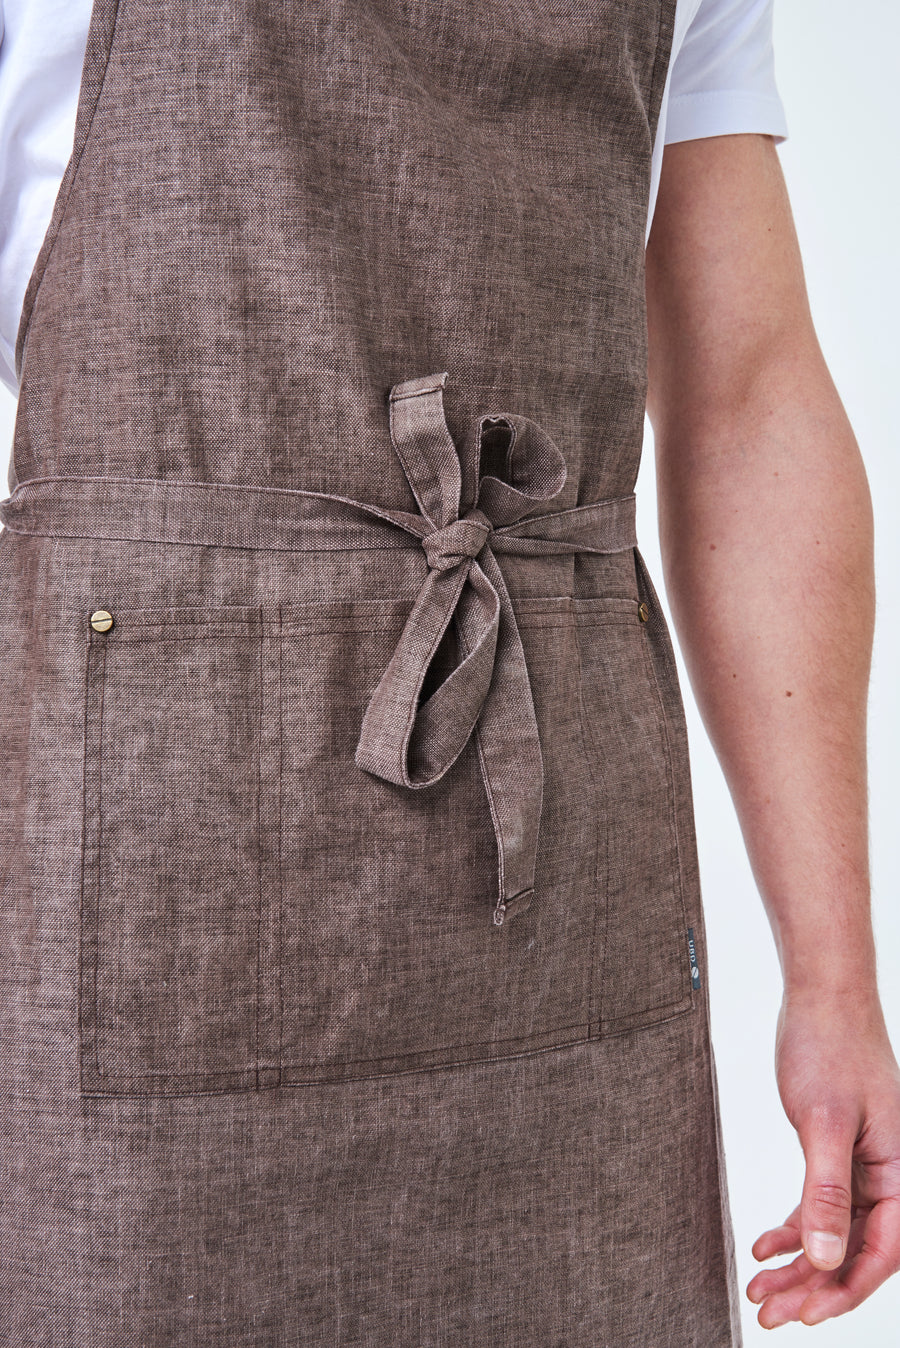 CLEMENTINE BIB Apron with metal trims - Chocolate Linen